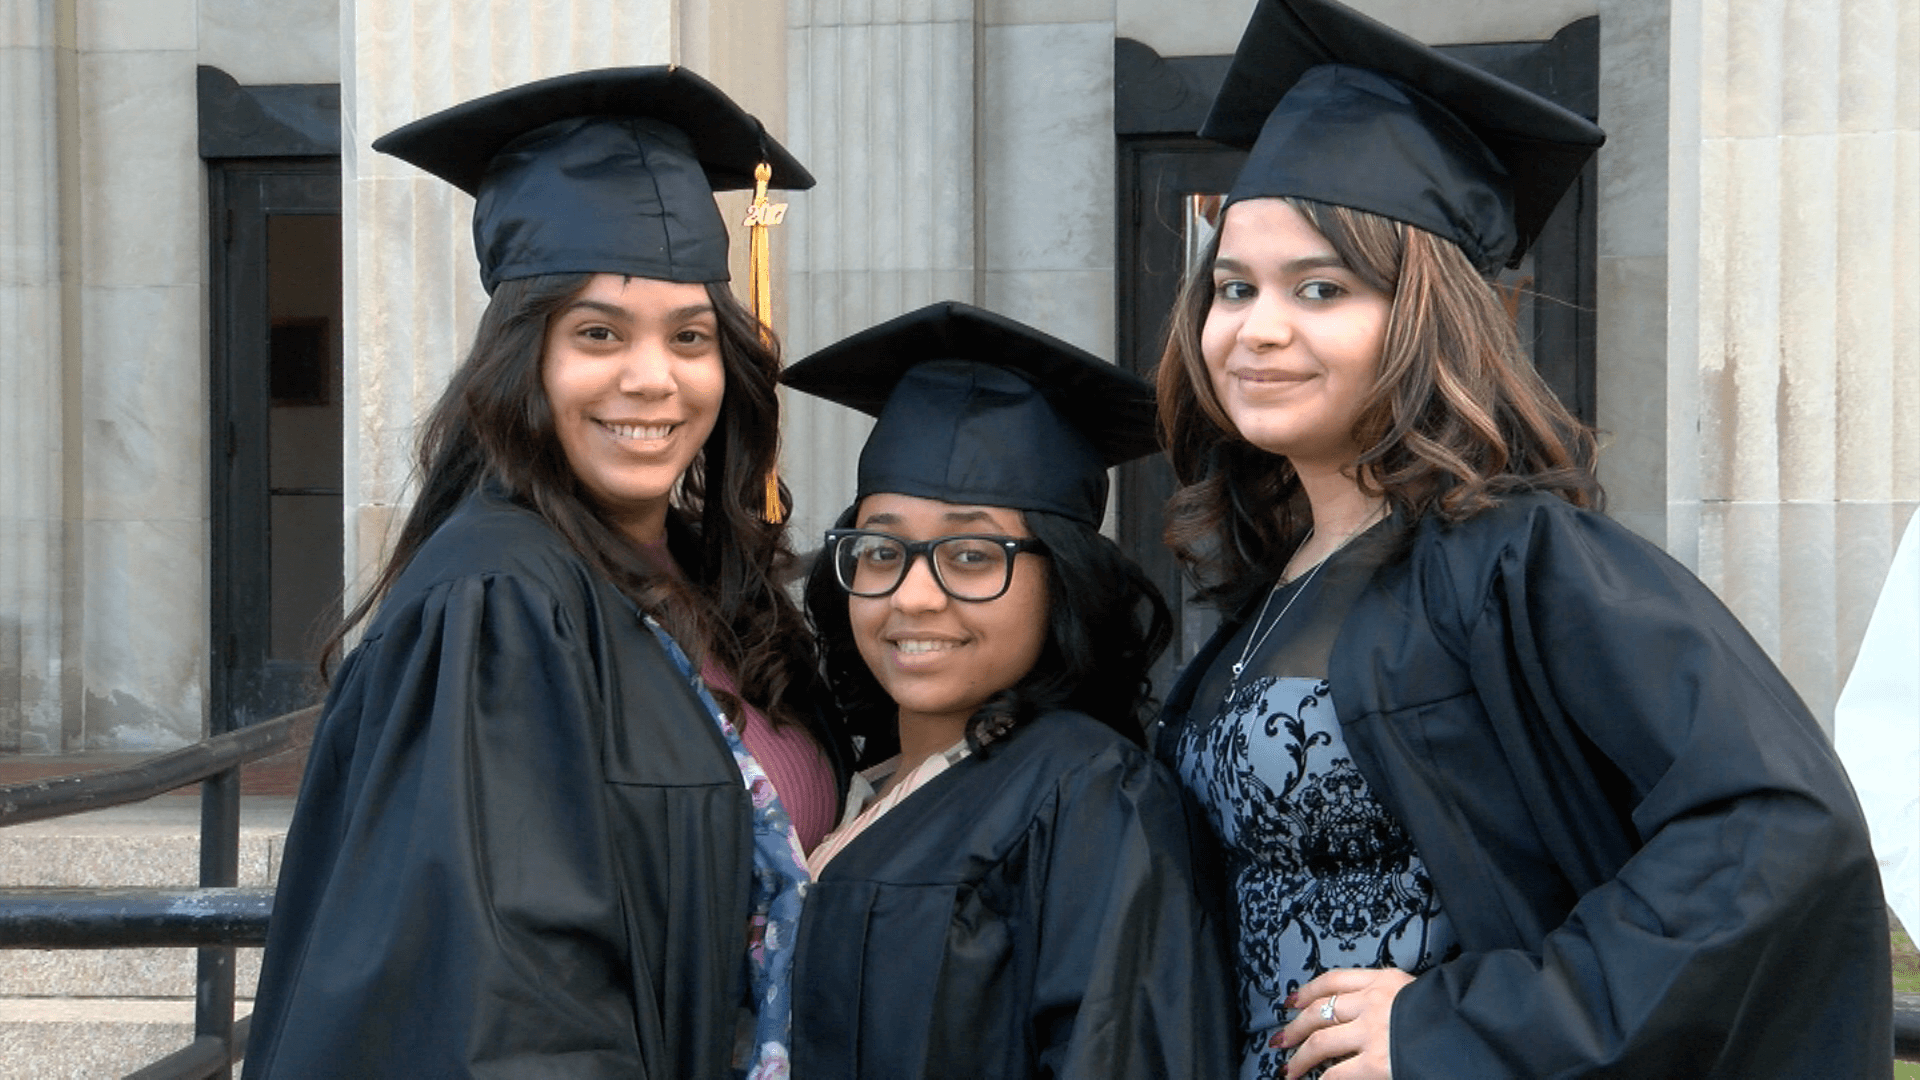 2017 graduates 3 female students